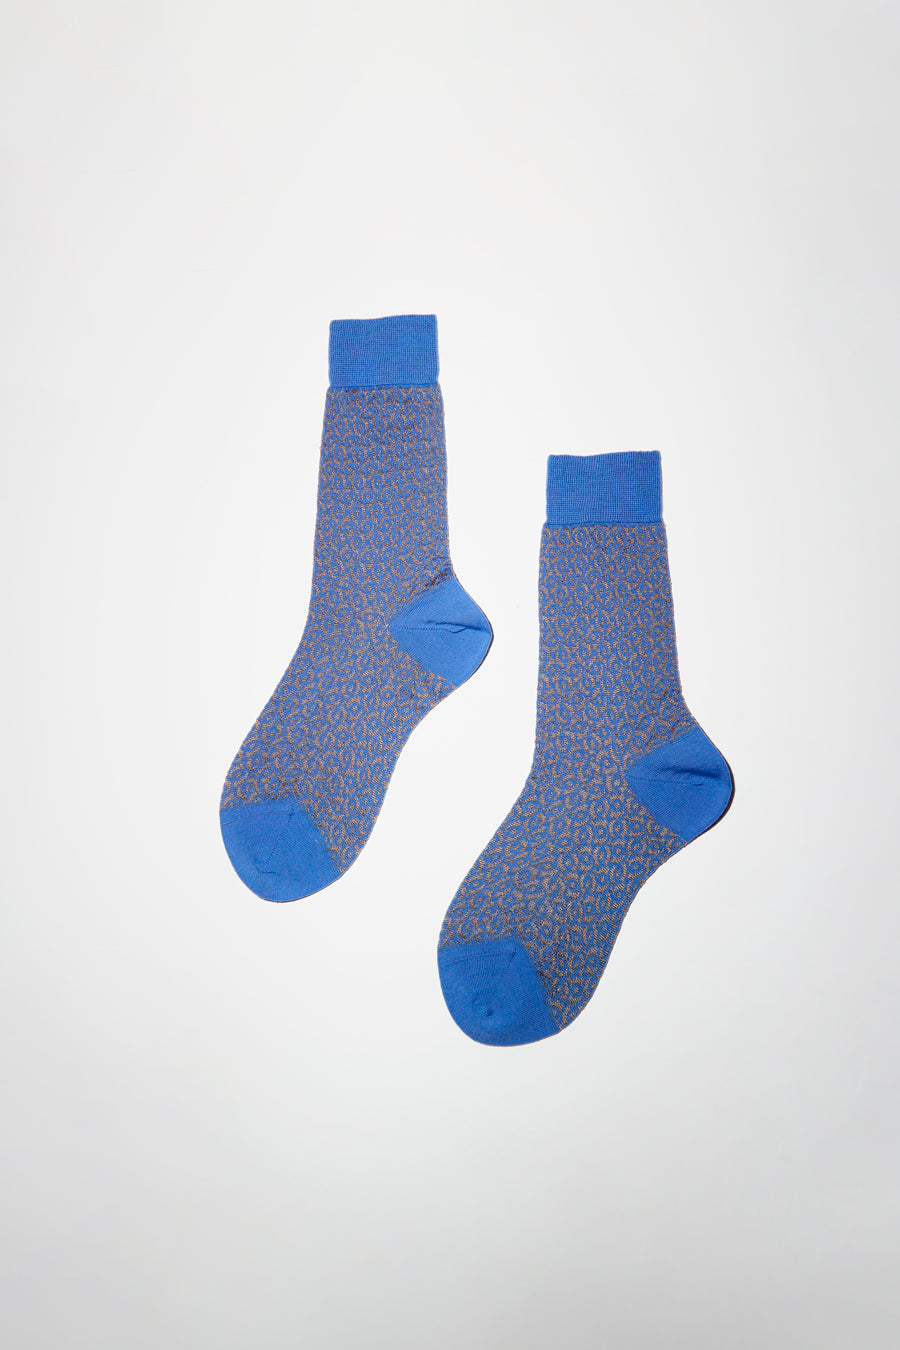 Maria La Rosa Unisex Mid Calf Wool and Silk Patterned Sock in Sky